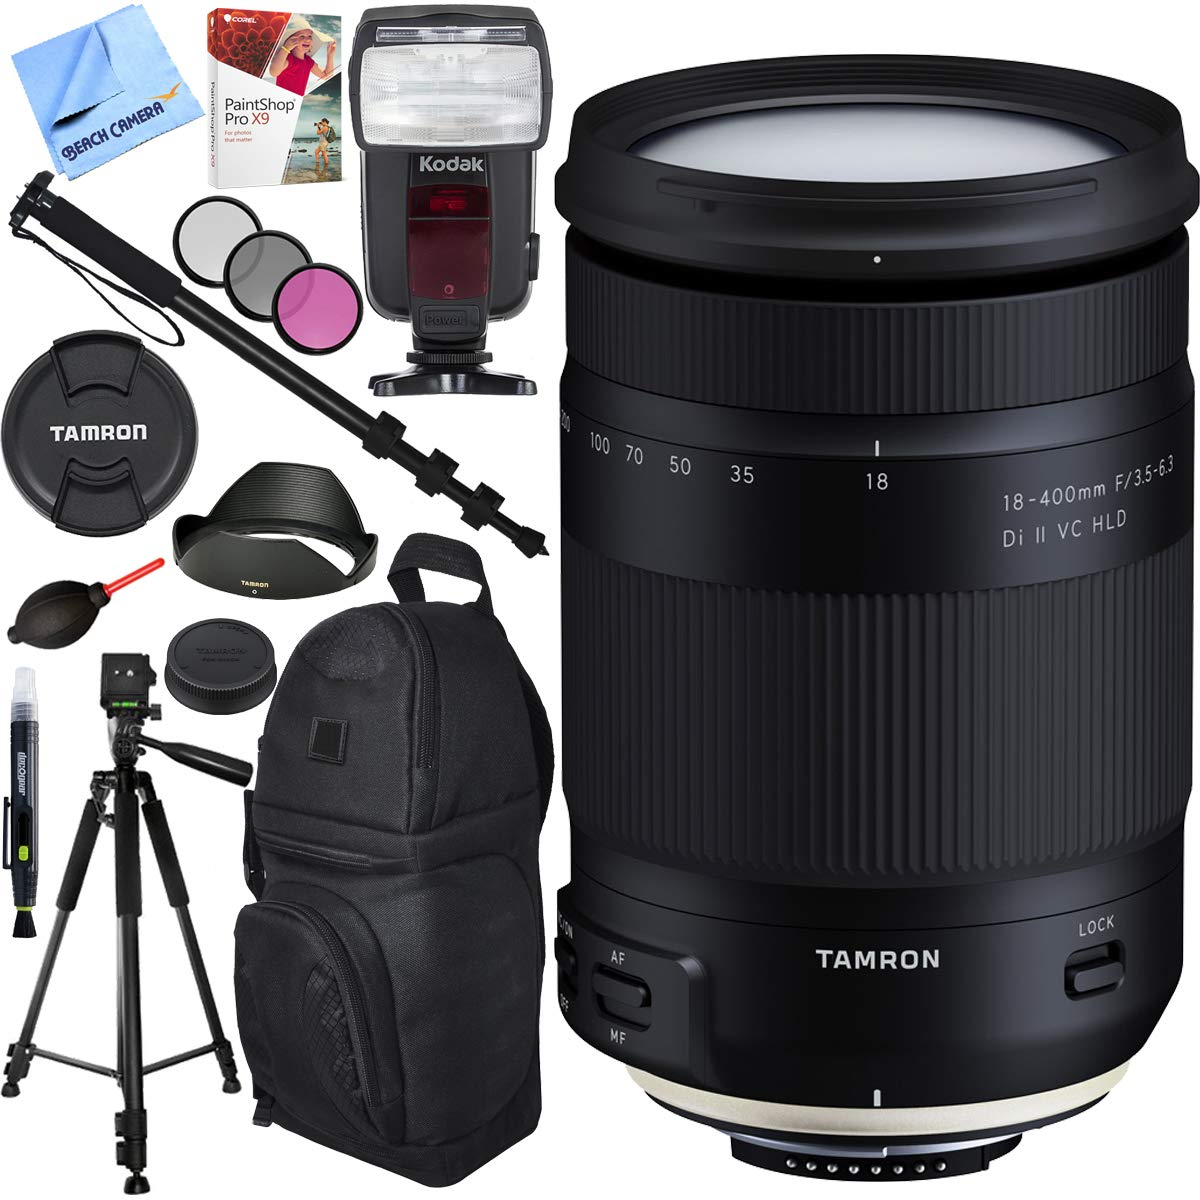 Tamron 18-400mm f/3.5-6.3 Di II VC HLD All-in-One Zoom Lens for Nikon Mount with Pro Sling Backpack Plus Accessories Bundle by Tamron